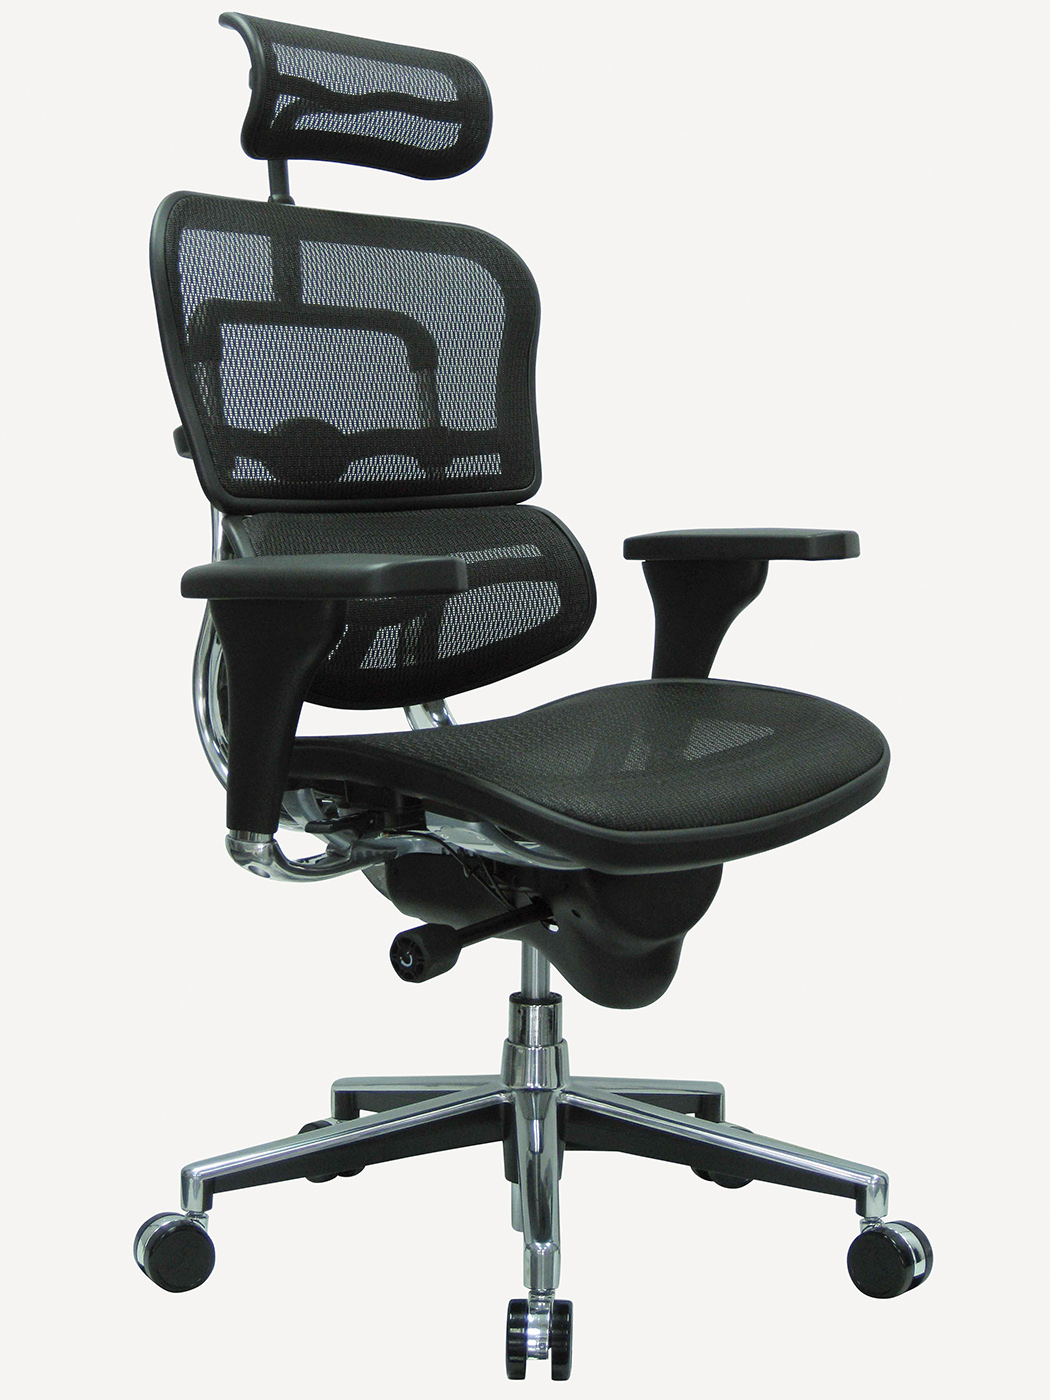 Eurotech Ergo High Back-Mesh Managers Chair Black